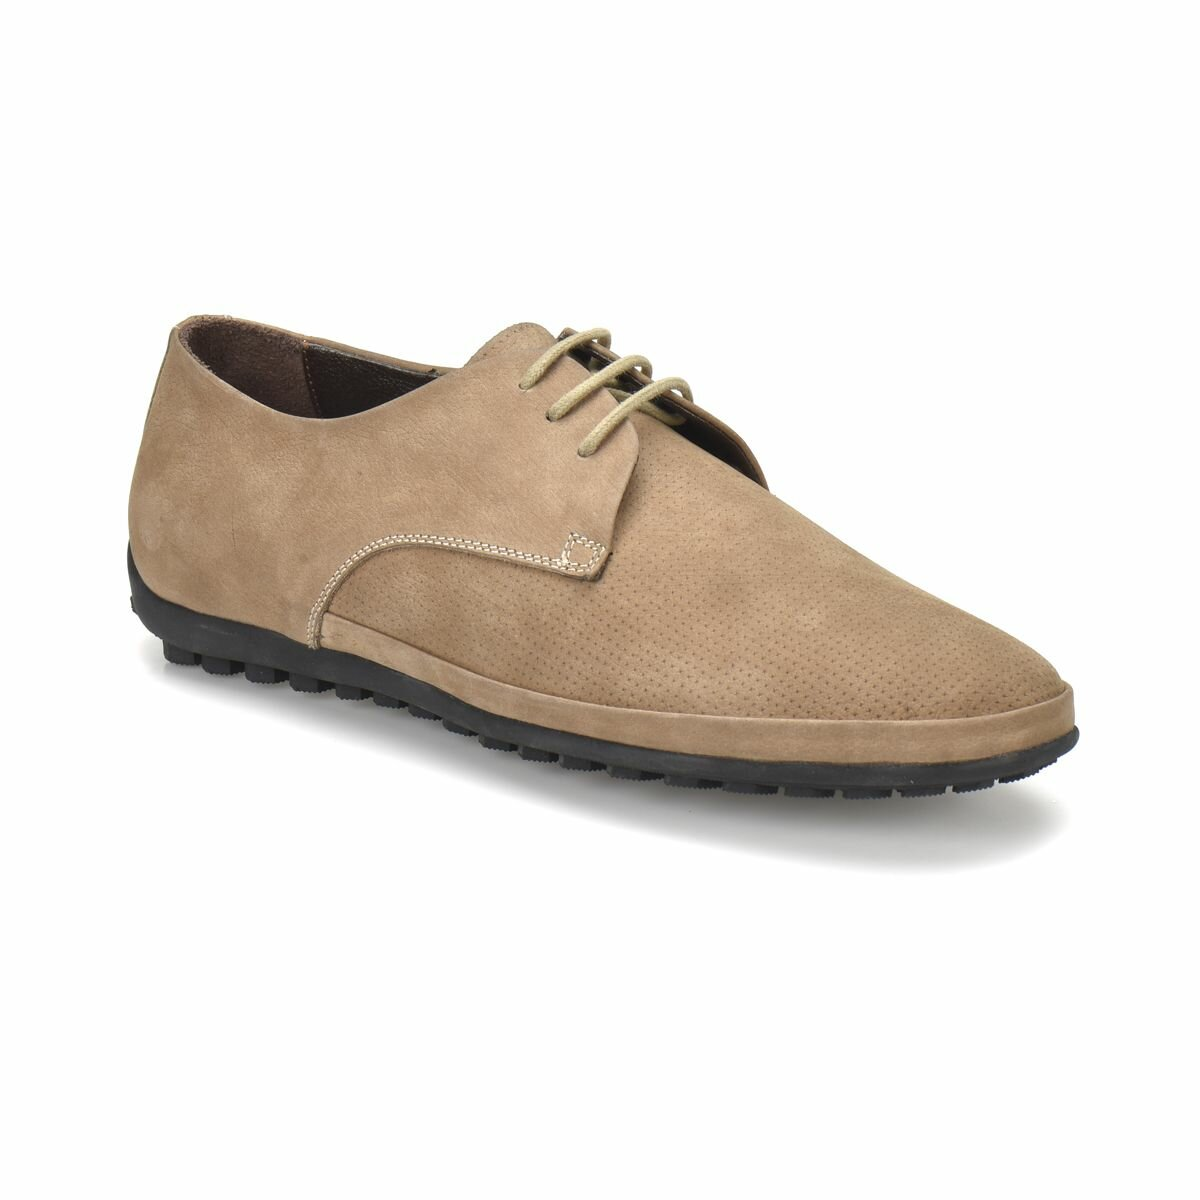 FLO 102 M 6688 Sand Color Men 'S Classic Shoes Flogart